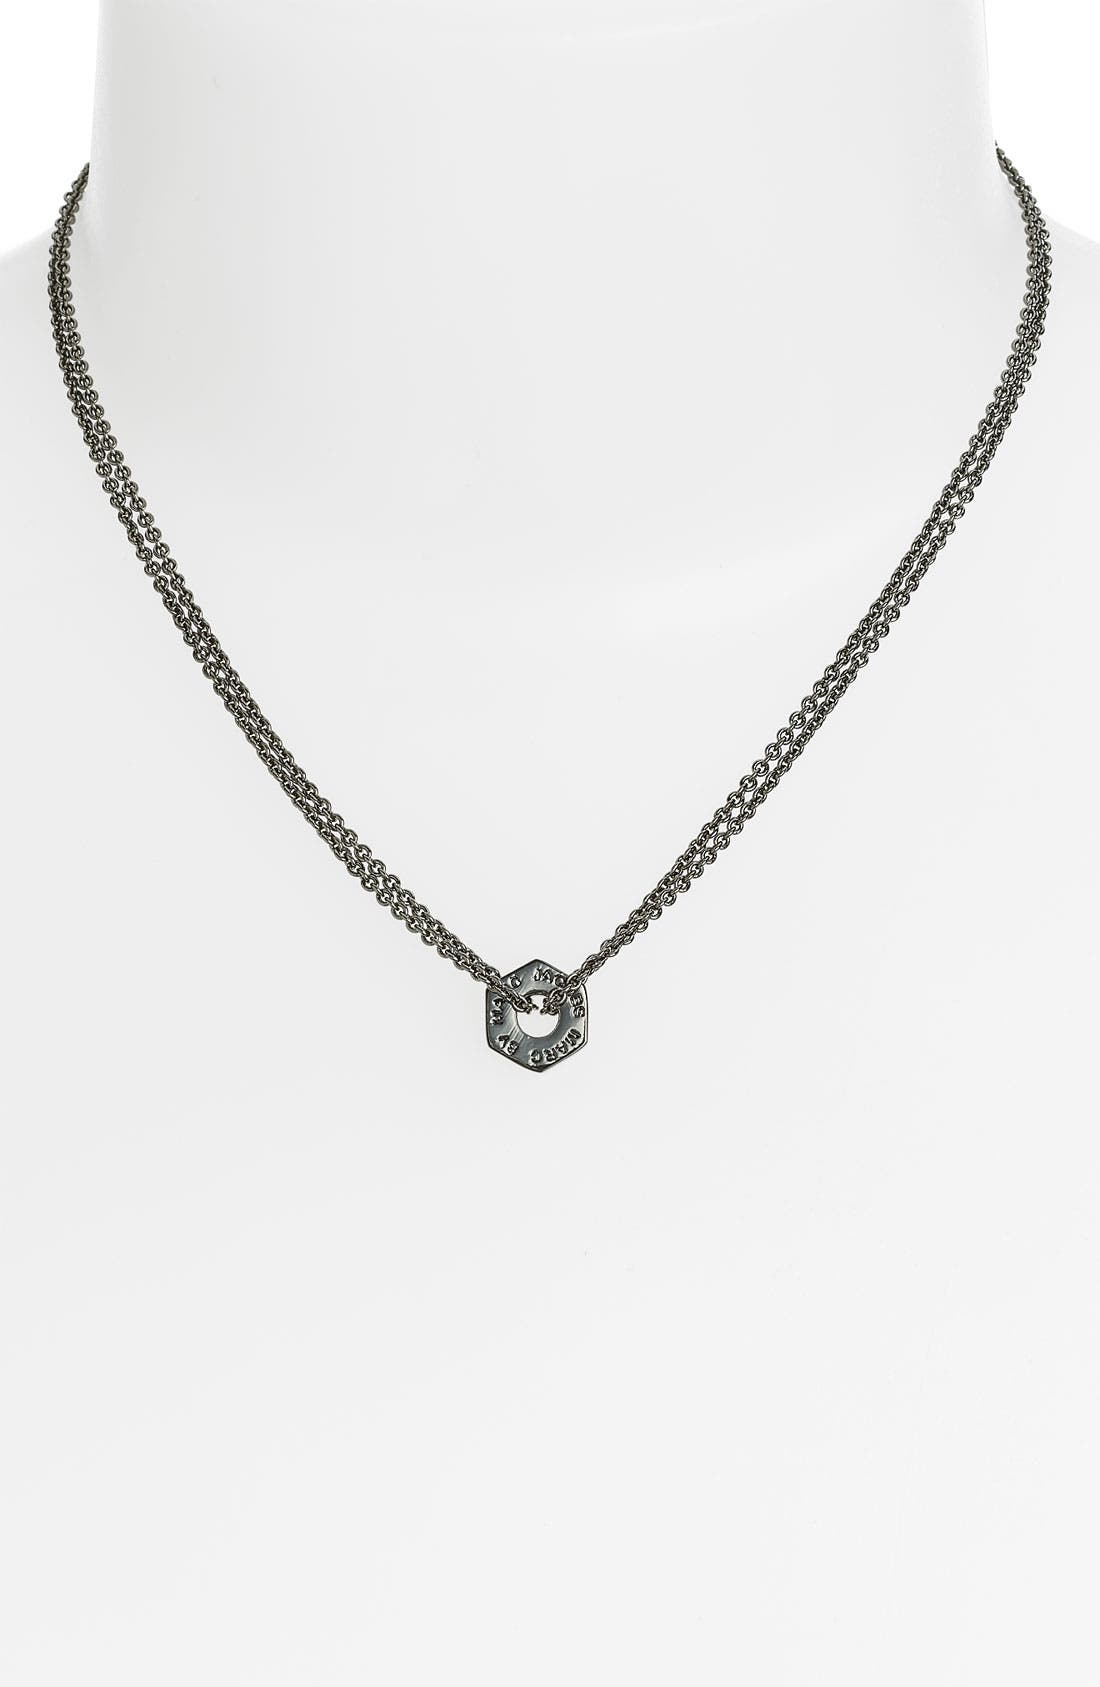 Alternate Image 1 Selected - MARC BY MARC JACOBS 'Bolts' Pendant Necklace